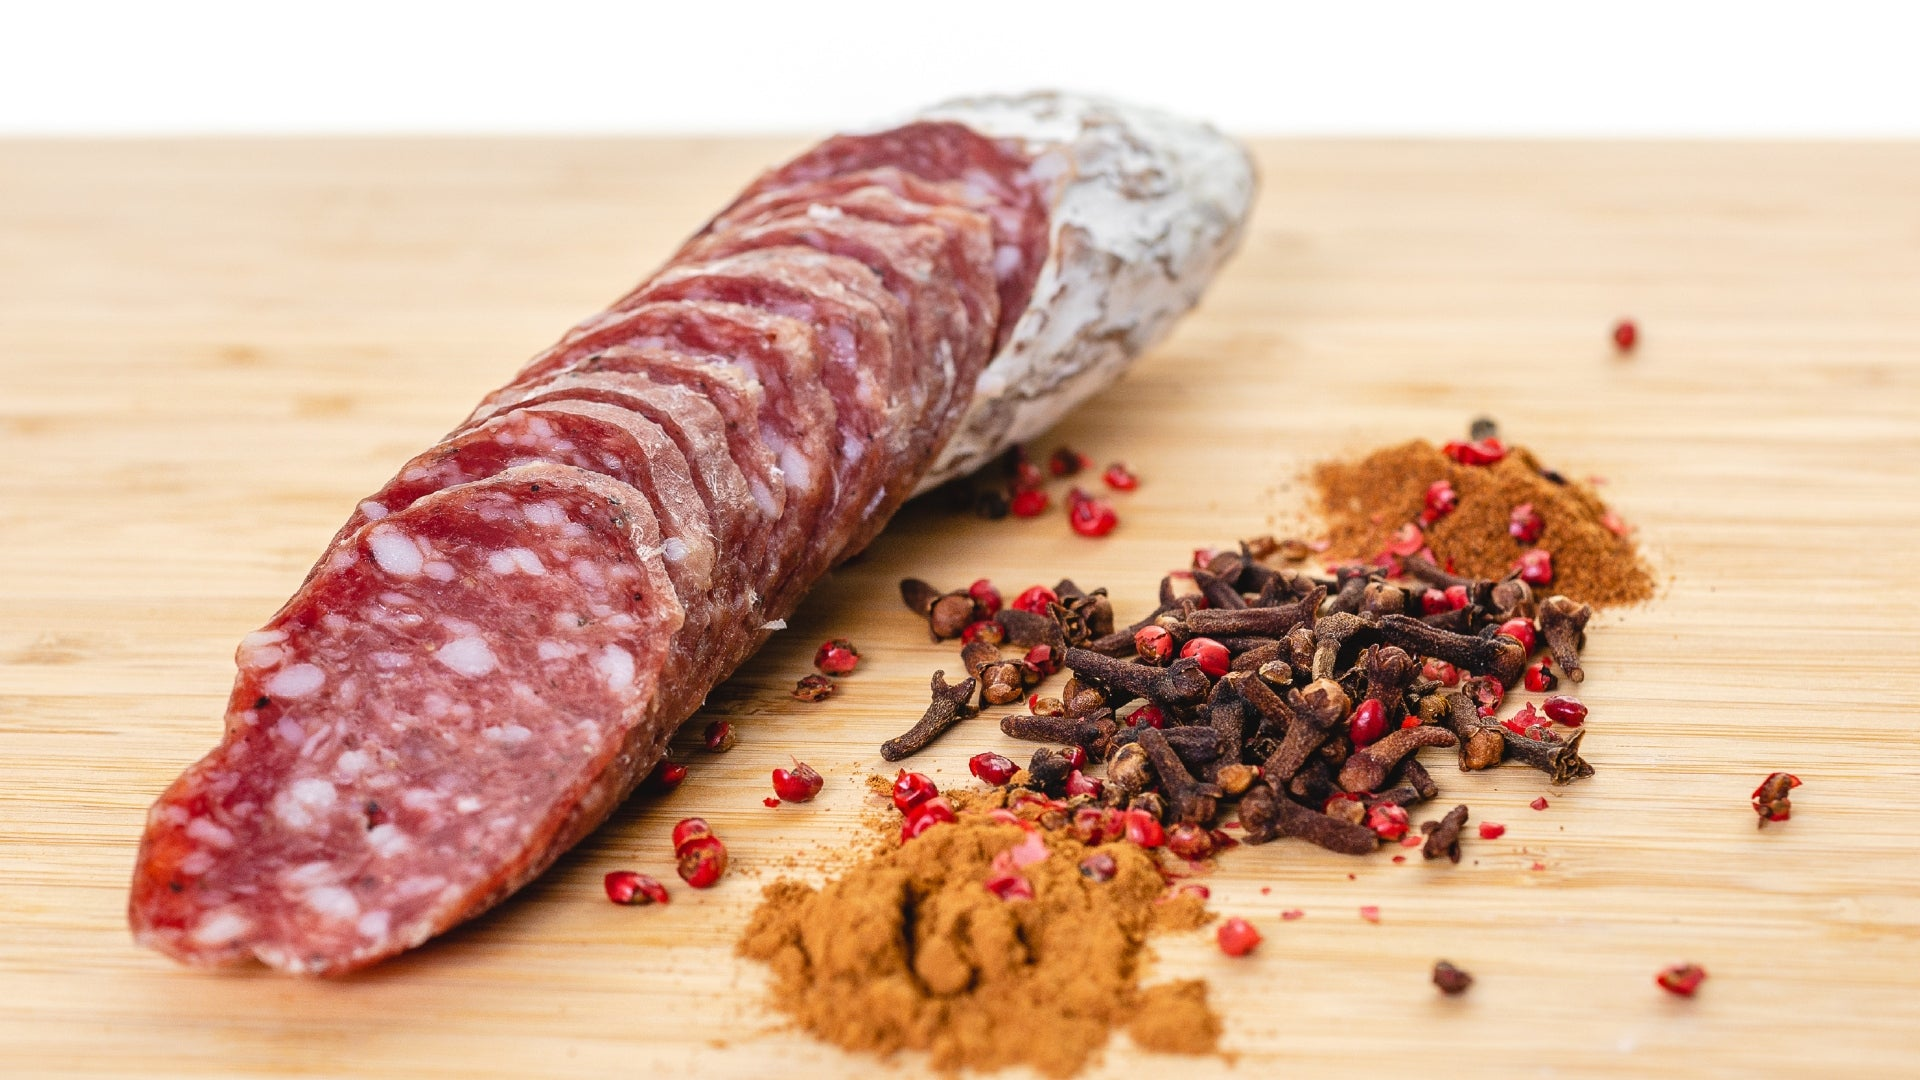 A close up of Rosette De Lyon salami cut into slices on a cutting board next to herbs and spices.